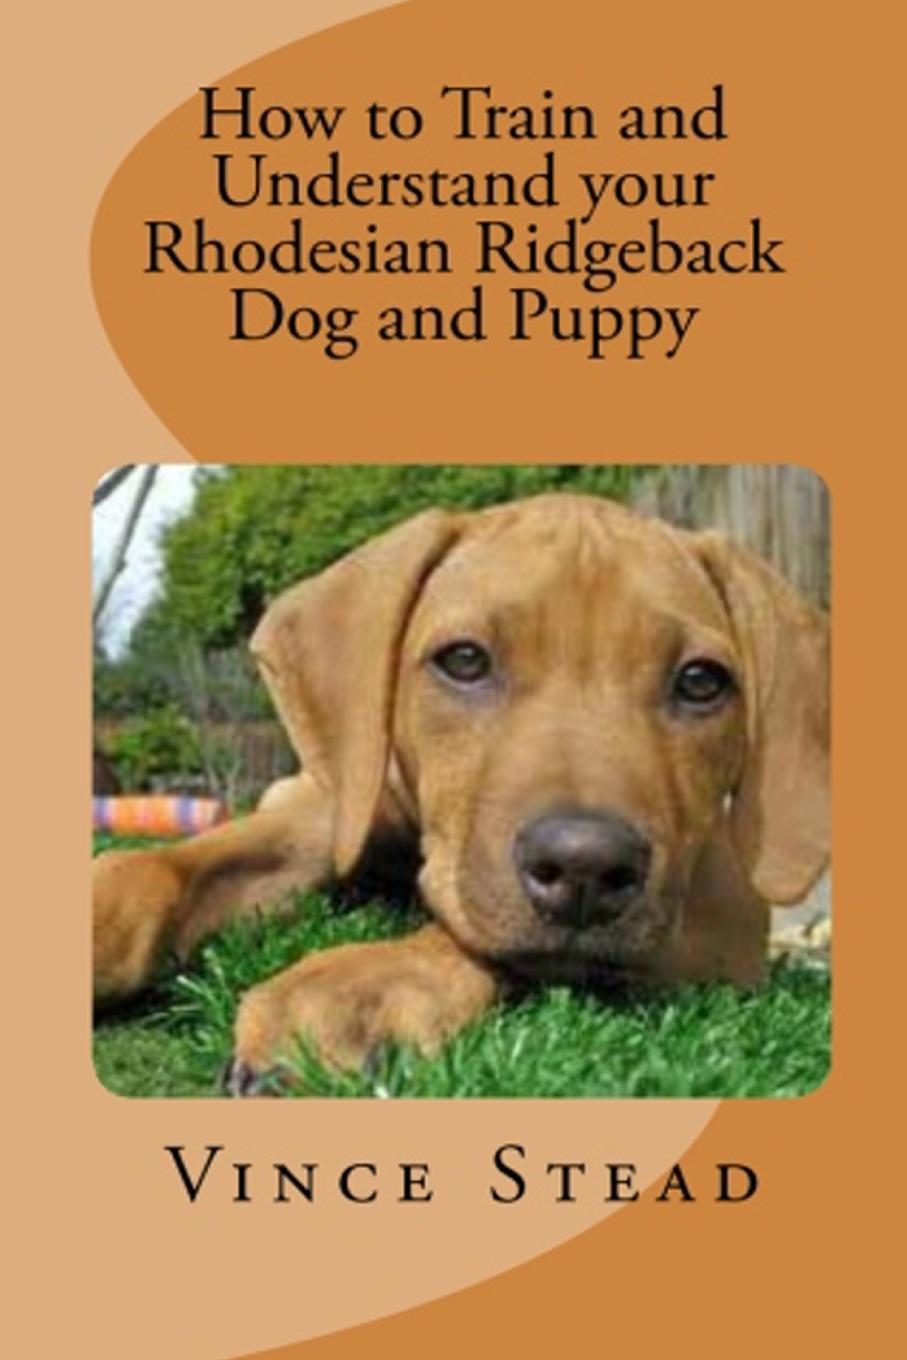 Vince Stead How to Train and Understand your Rhodesian Ridgeback Dog and Puppy цена